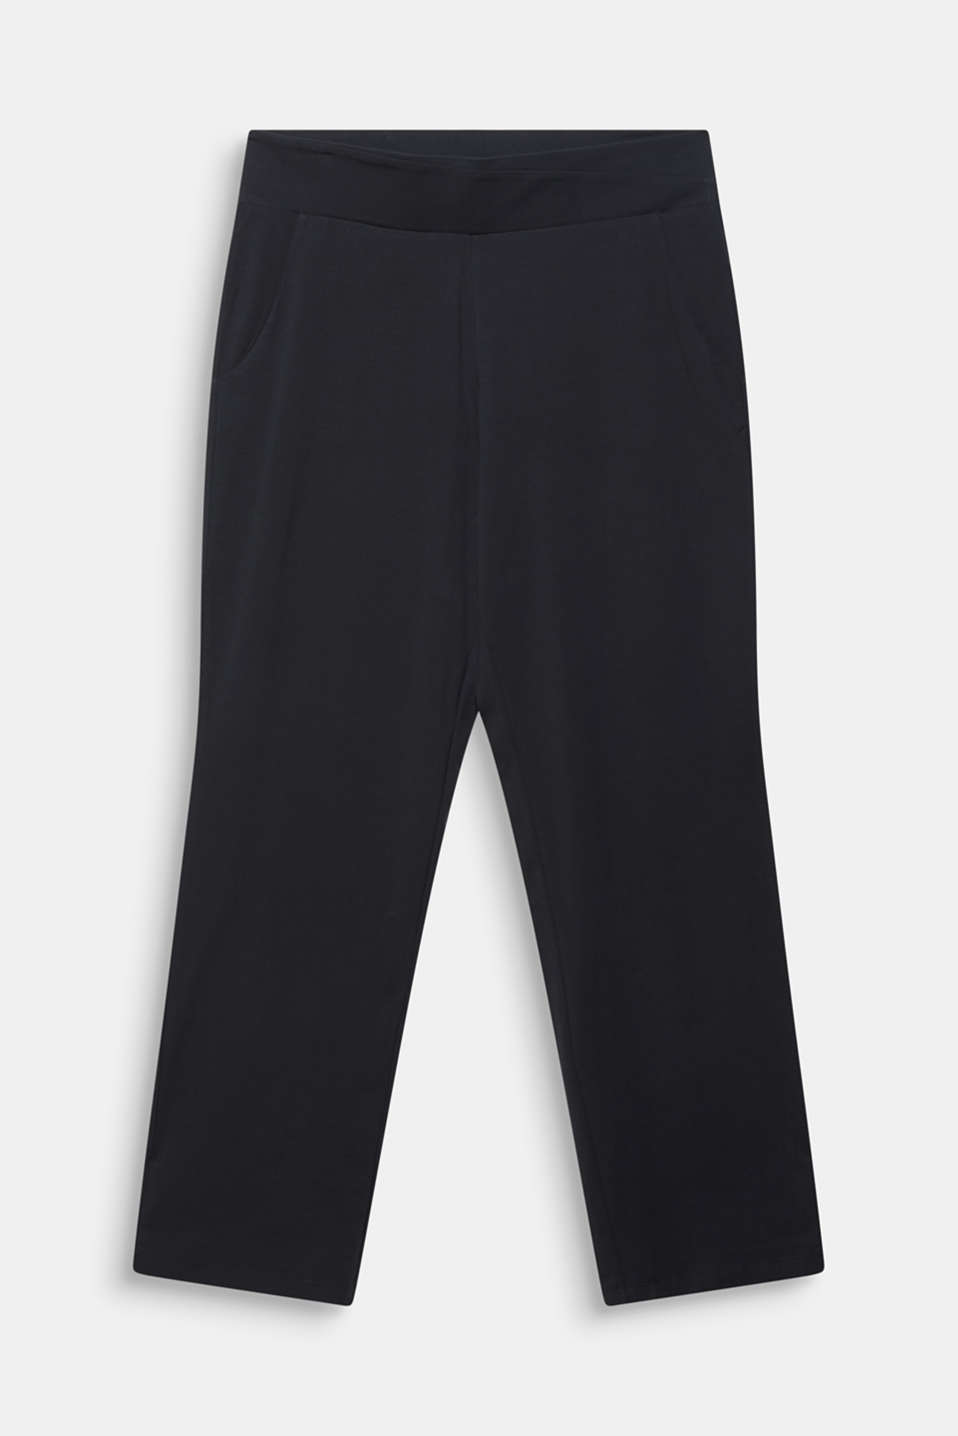 NEW YEAR. NEW ME. Straight leg stretch trousers, BLACK, detail image number 6